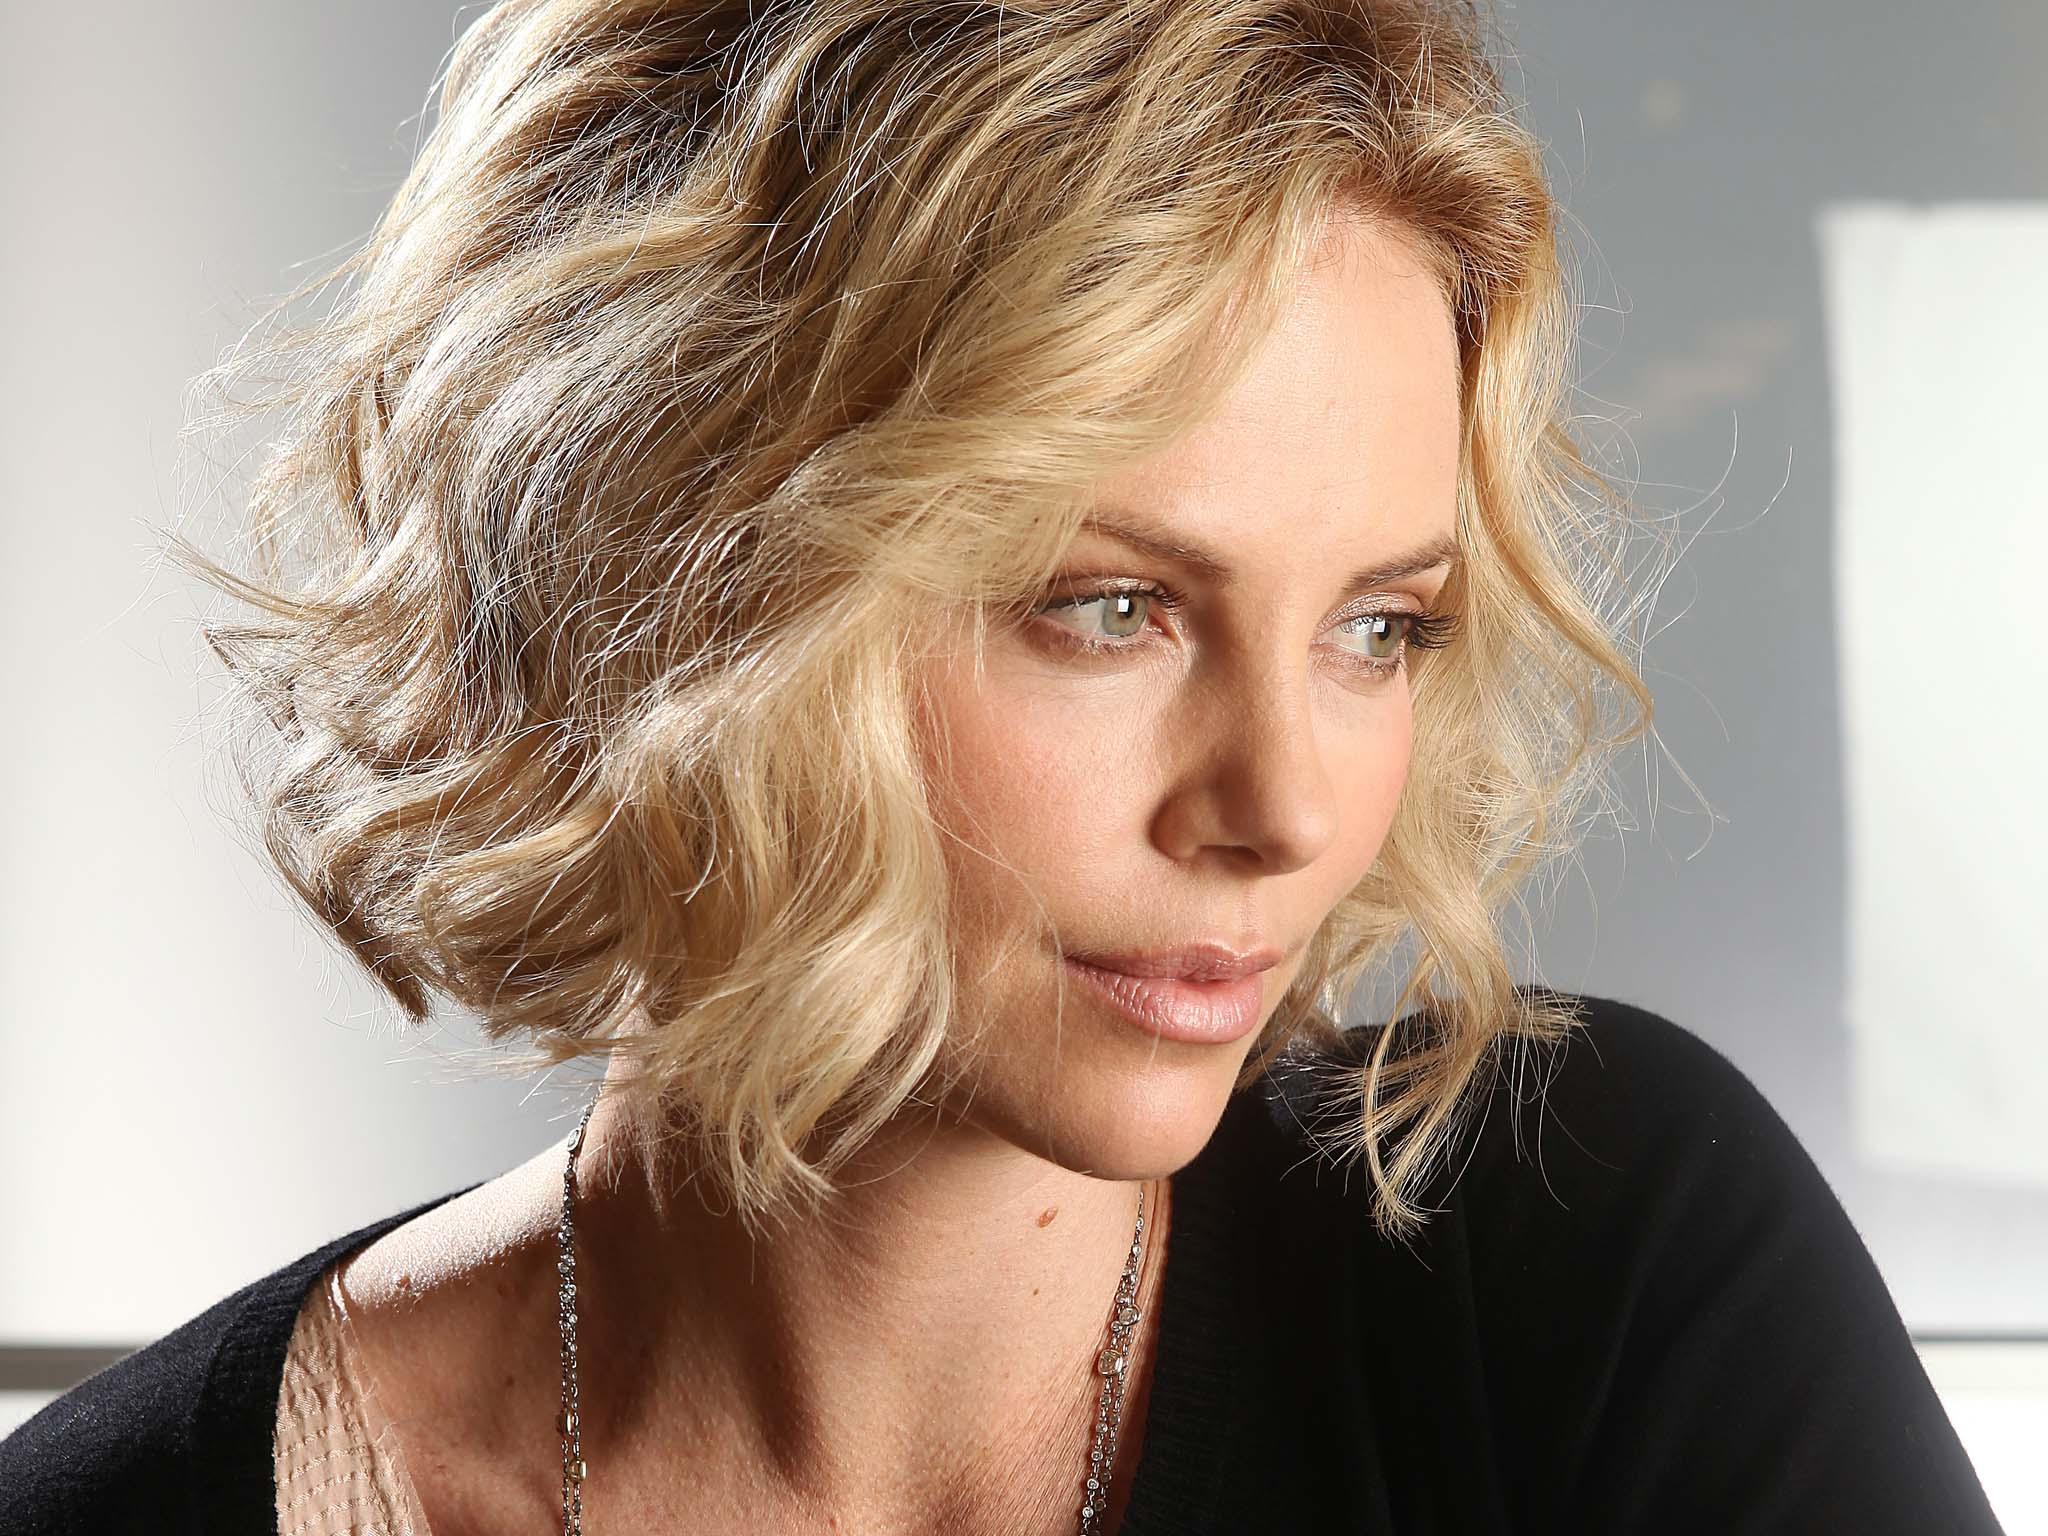 Desktop Charlize Therons Wallpaper Free Download